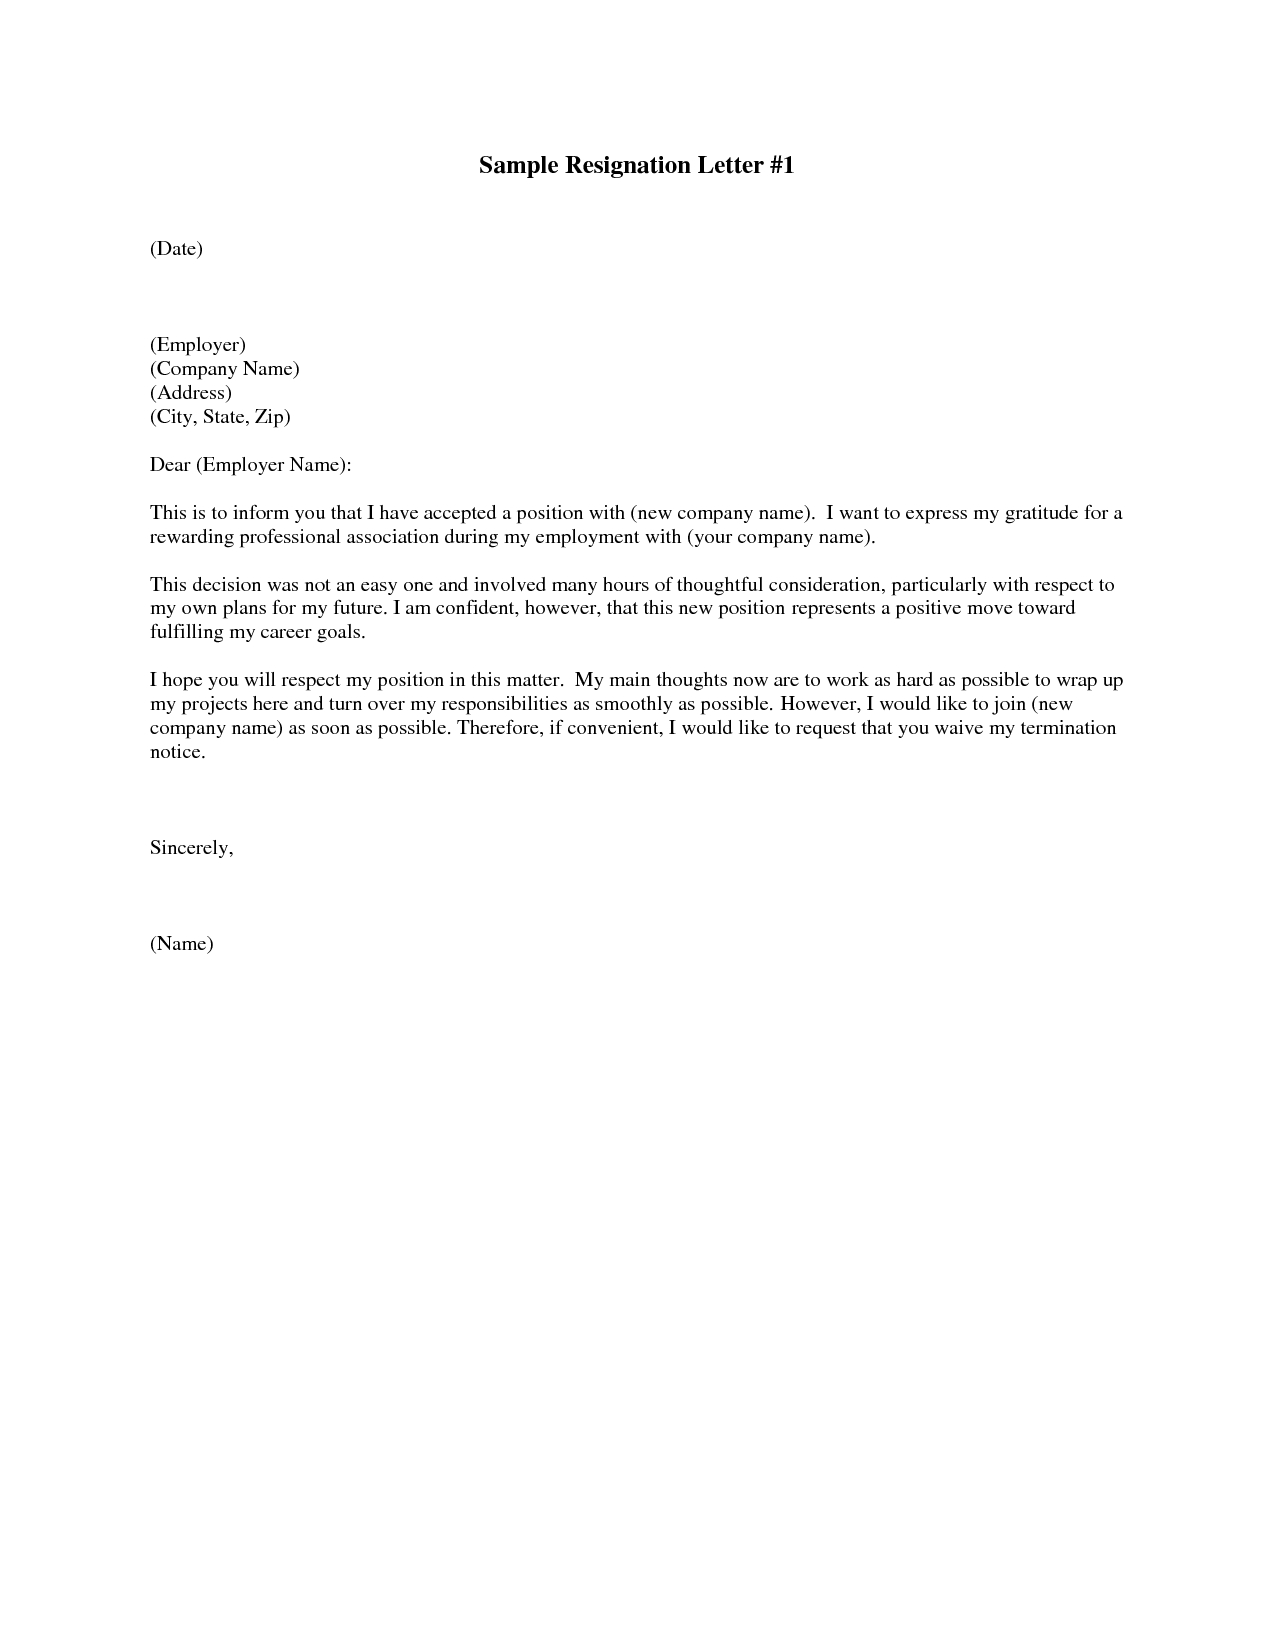 Sample Resignation Letter Template - Resignation Letter Sample Image Store Things to Wear